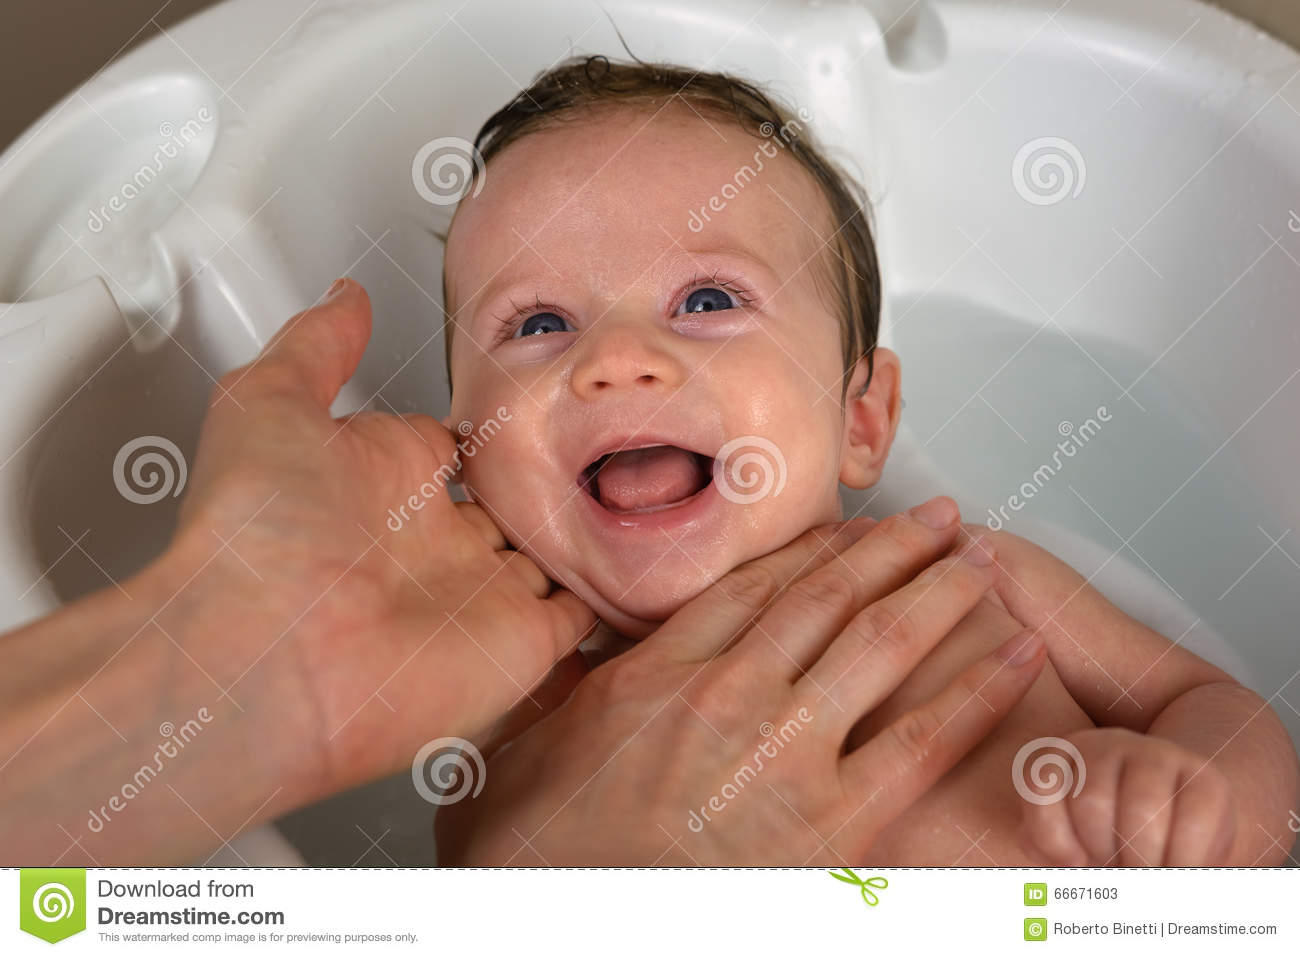 Infant in the bathroom stock image. Image of background - 66671603